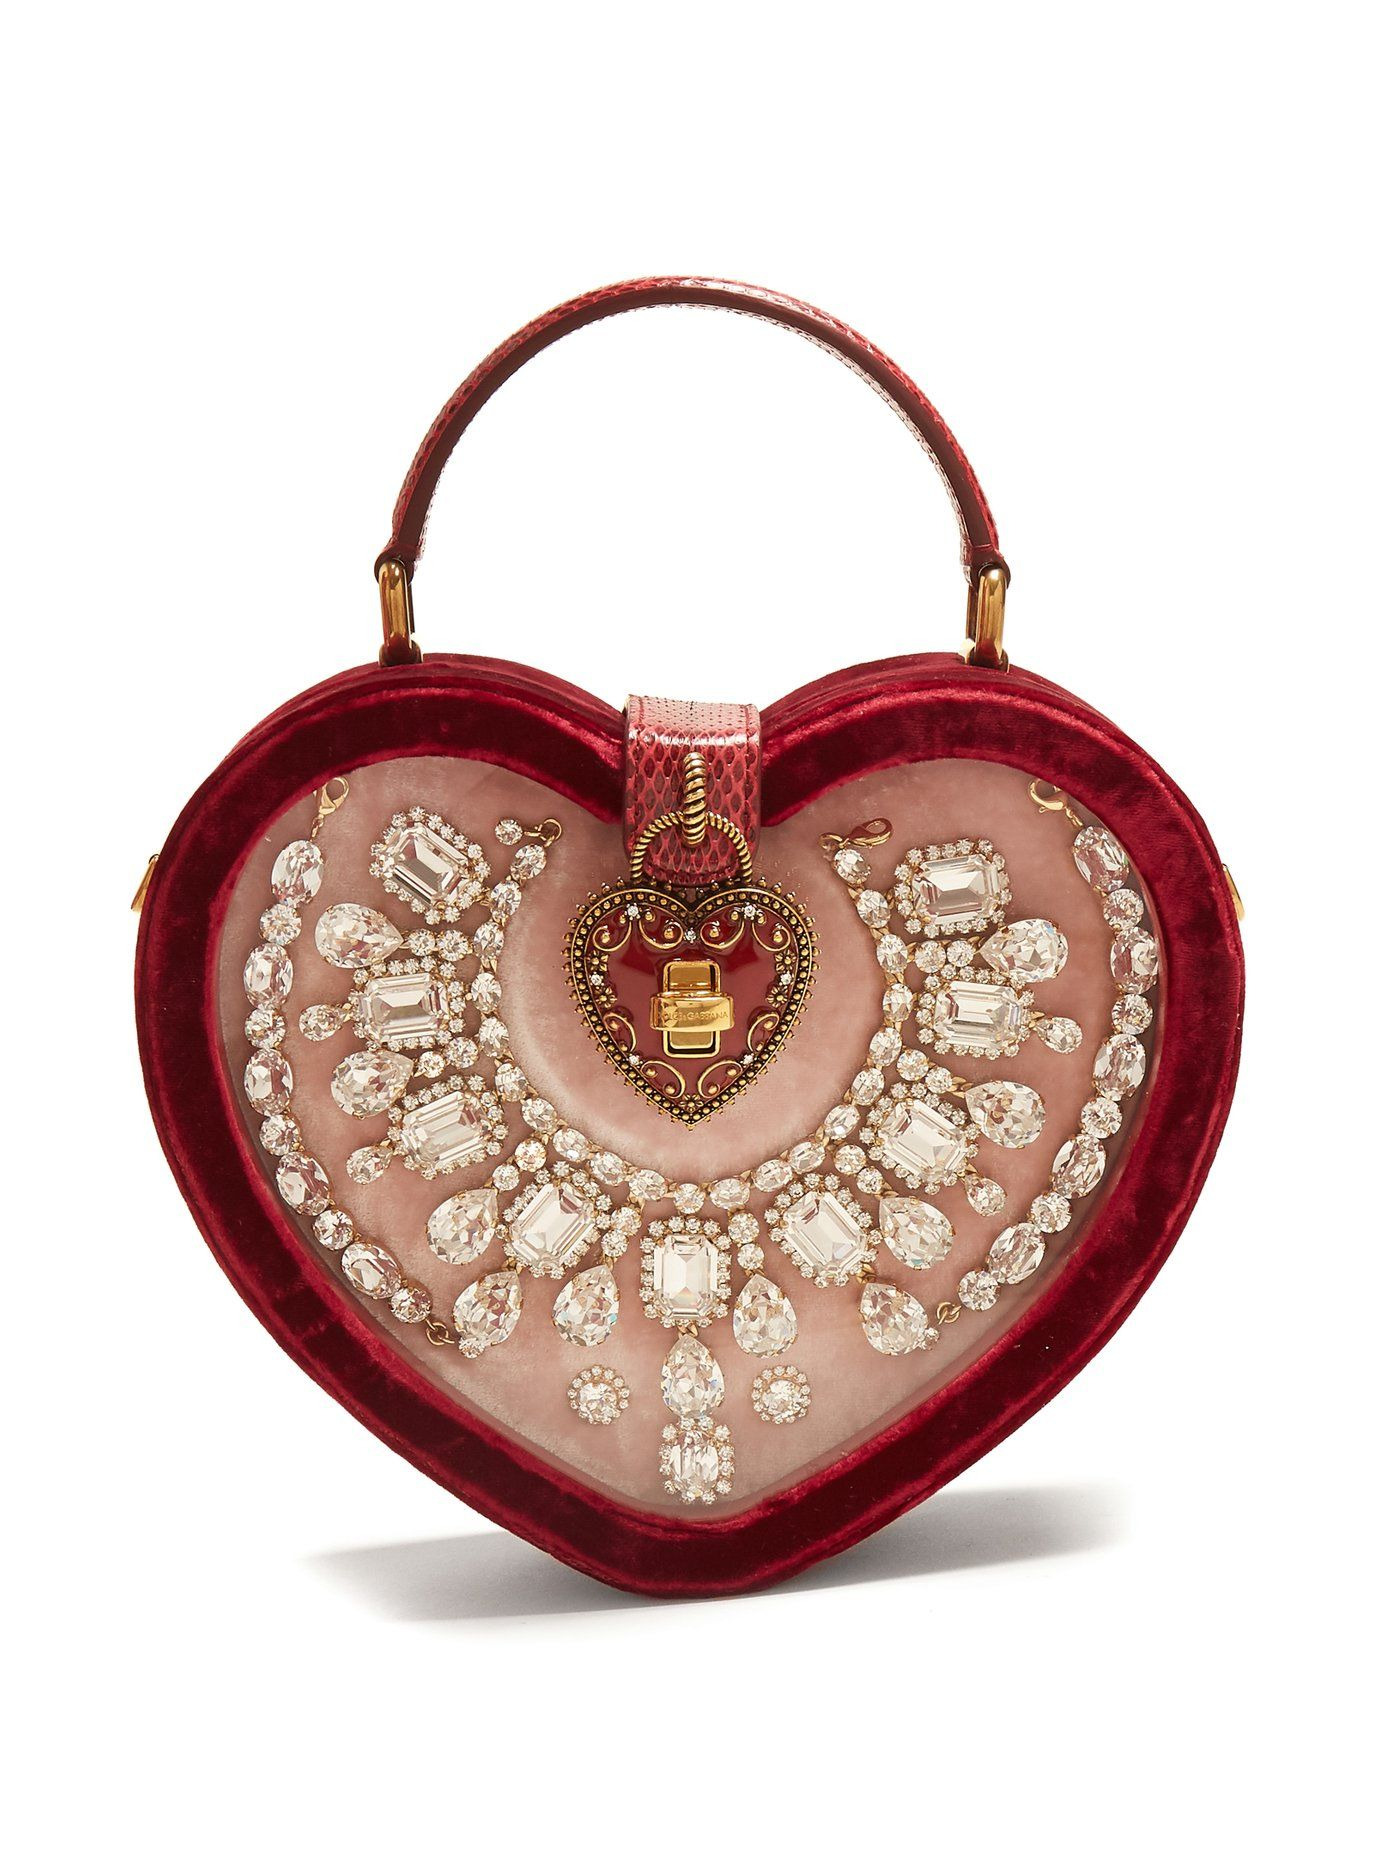 514b7d8d050 Crystal-embellished heart-shaped bag | Dolce & Gabbana | Doce& ...